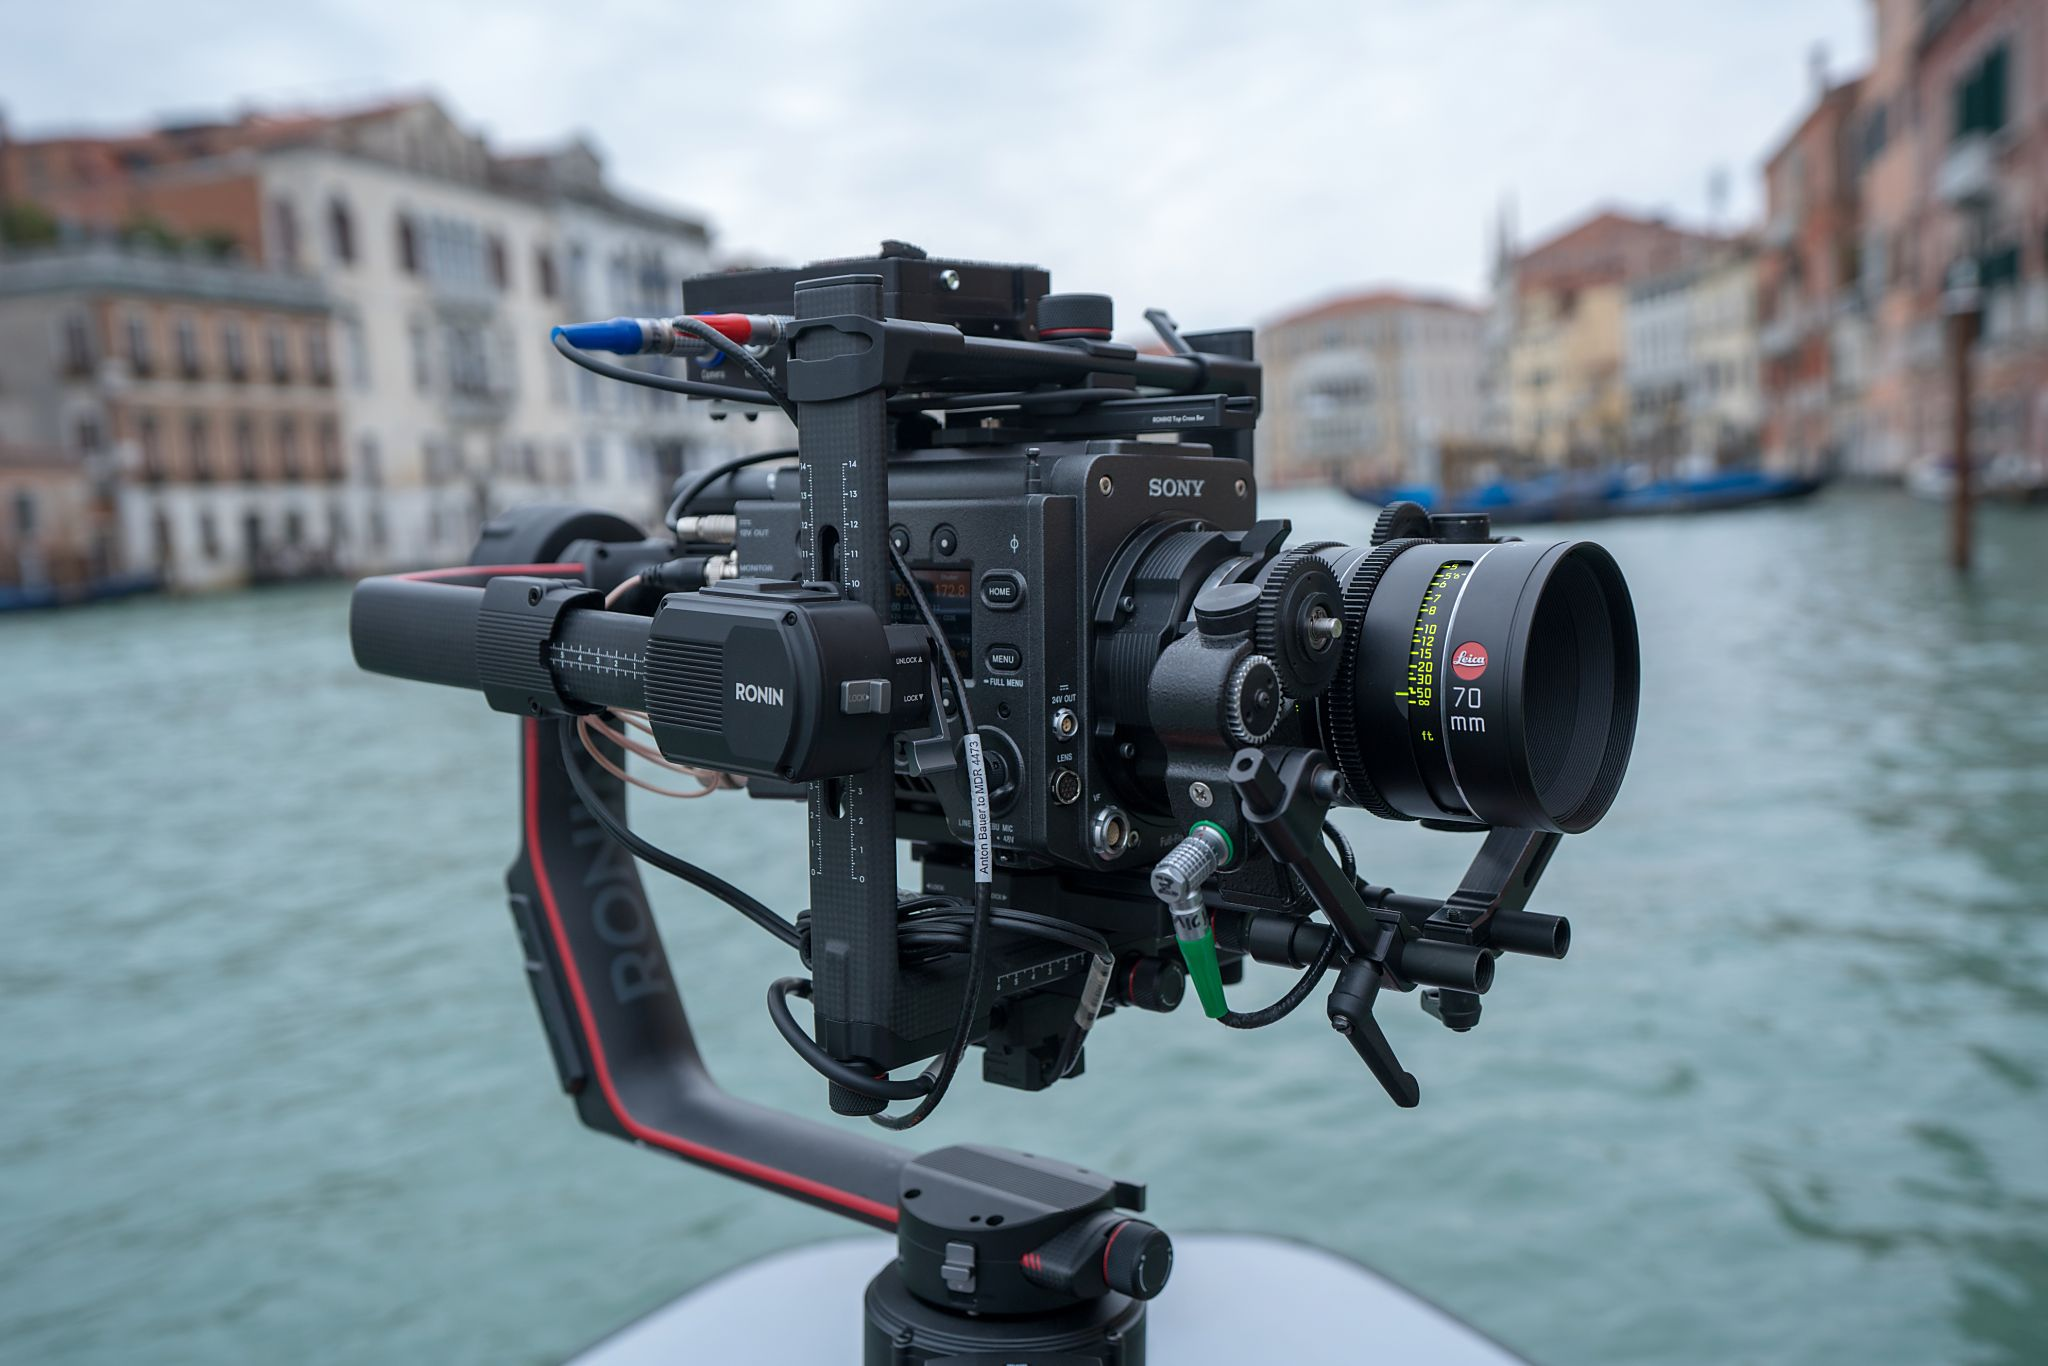 Leica Thalia 70mm prime lens on the Venice